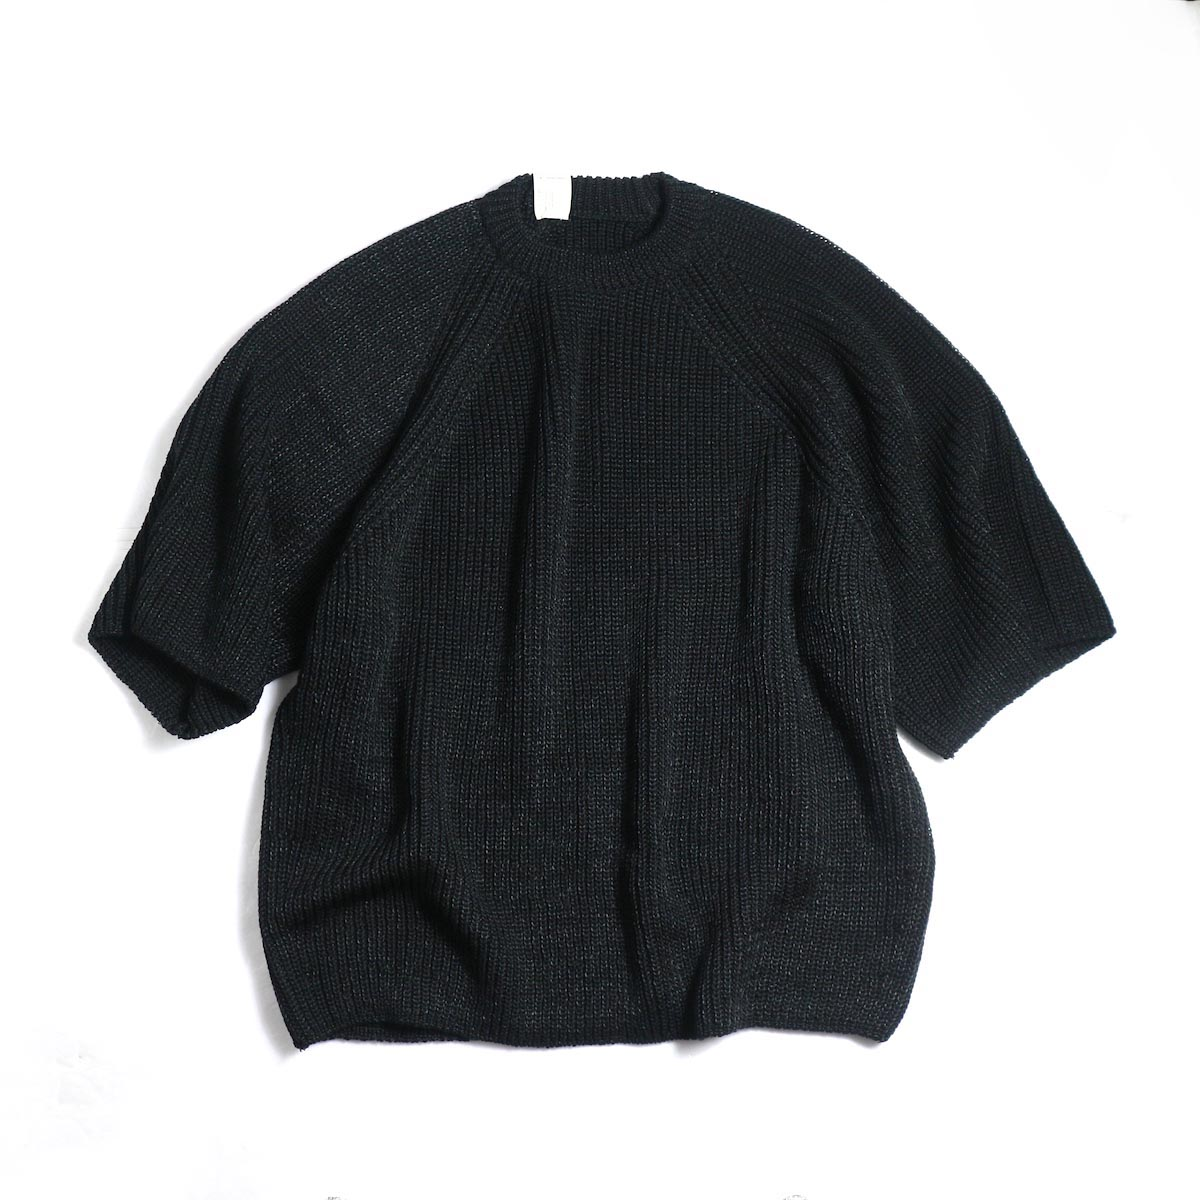 N.HOOLYWOOD / 191-KT05-063pieces Short Sleeve Knit -Black